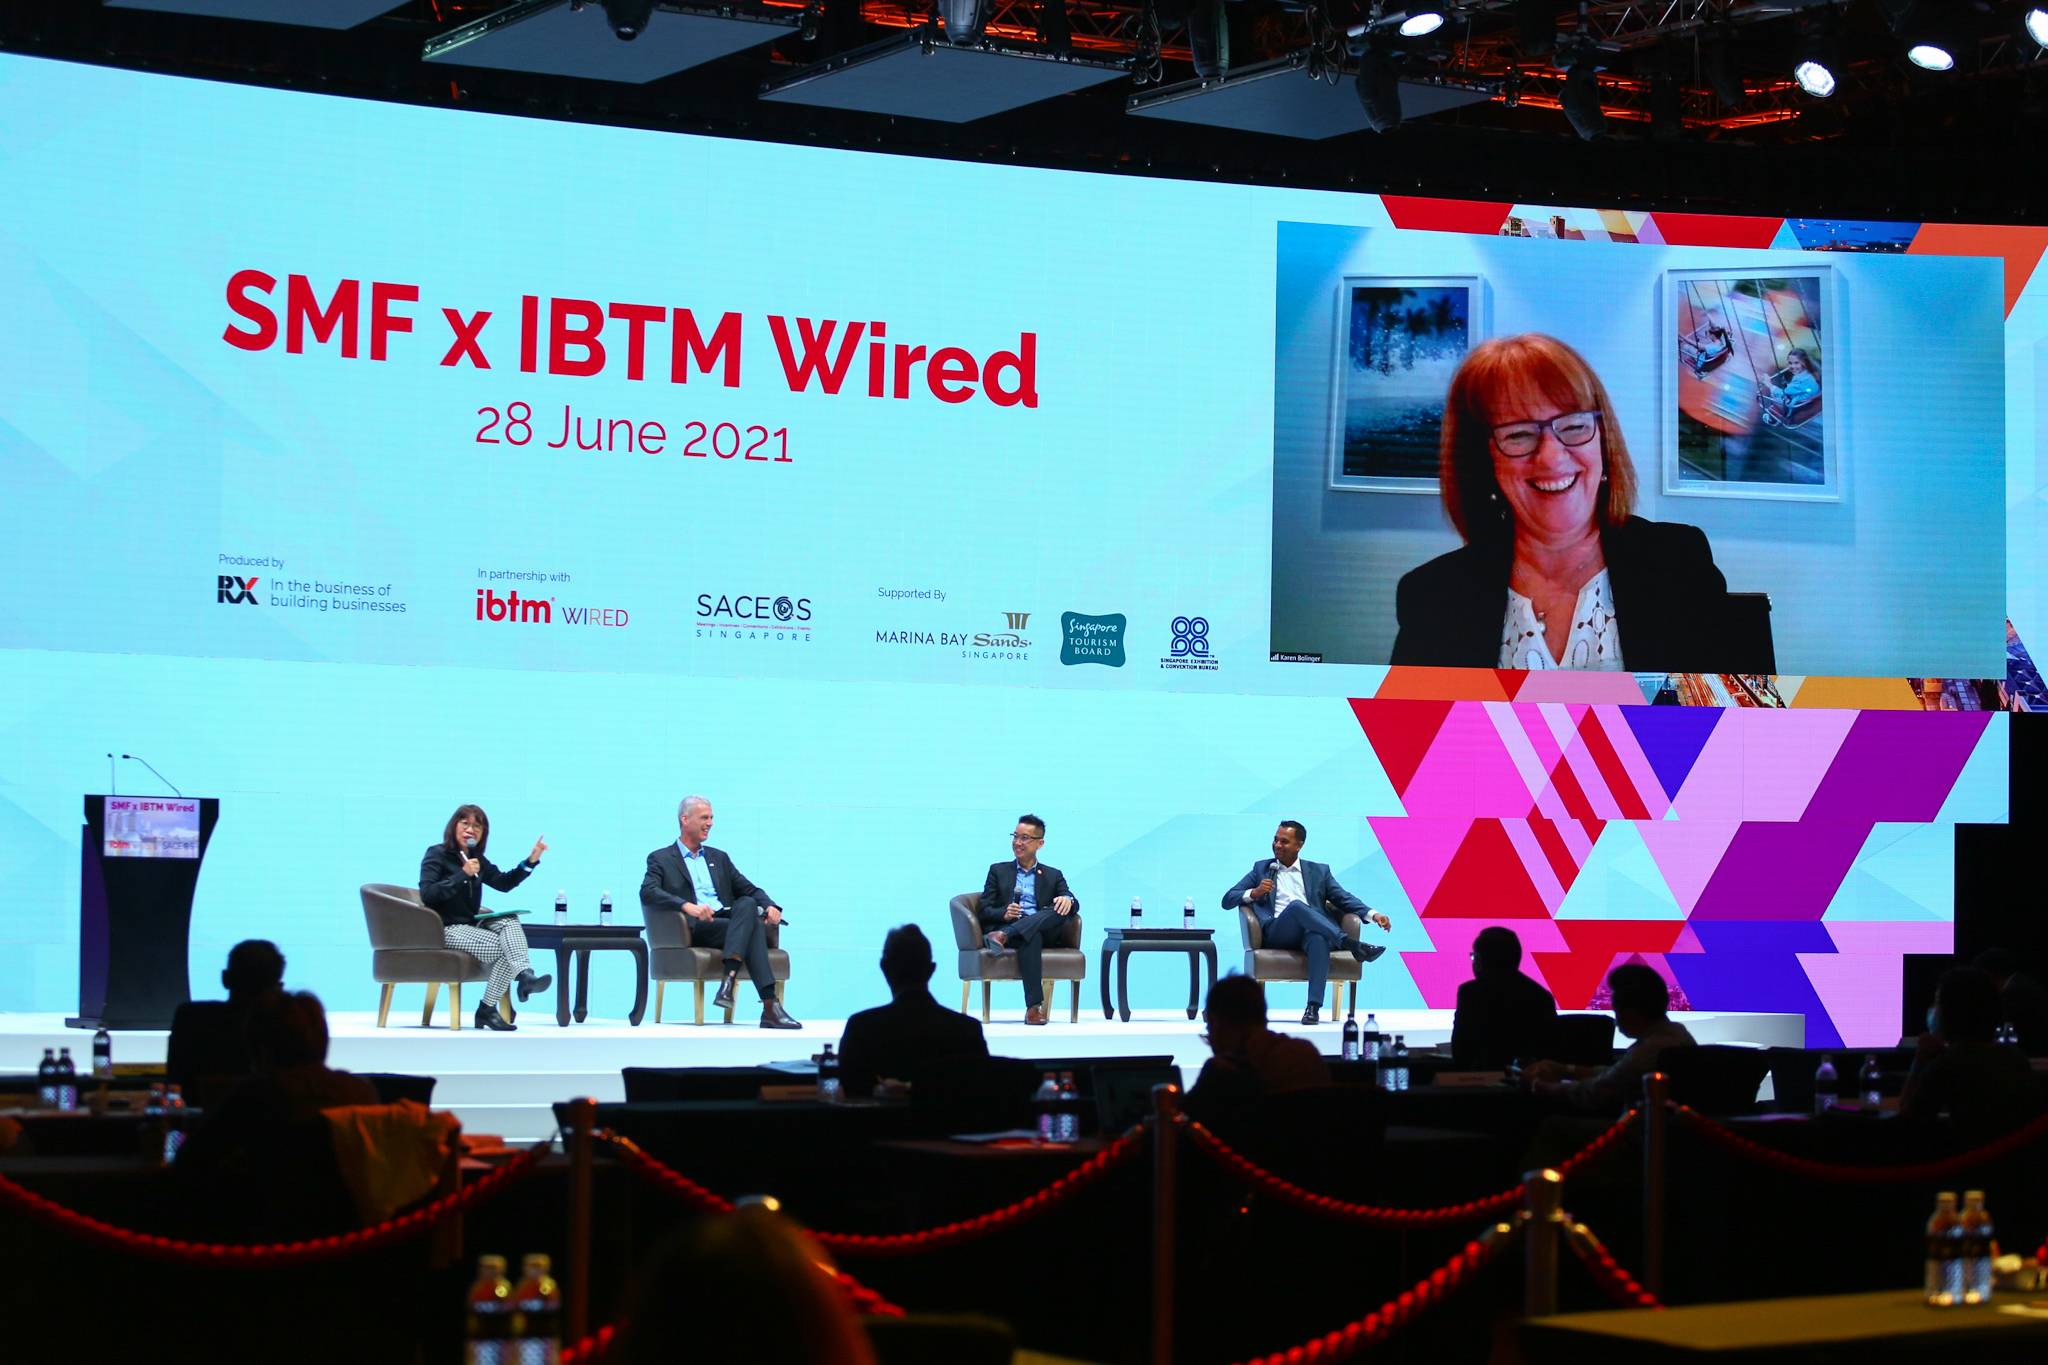 STB, PCMA and UFI launch white paper to reimagine the future of business events